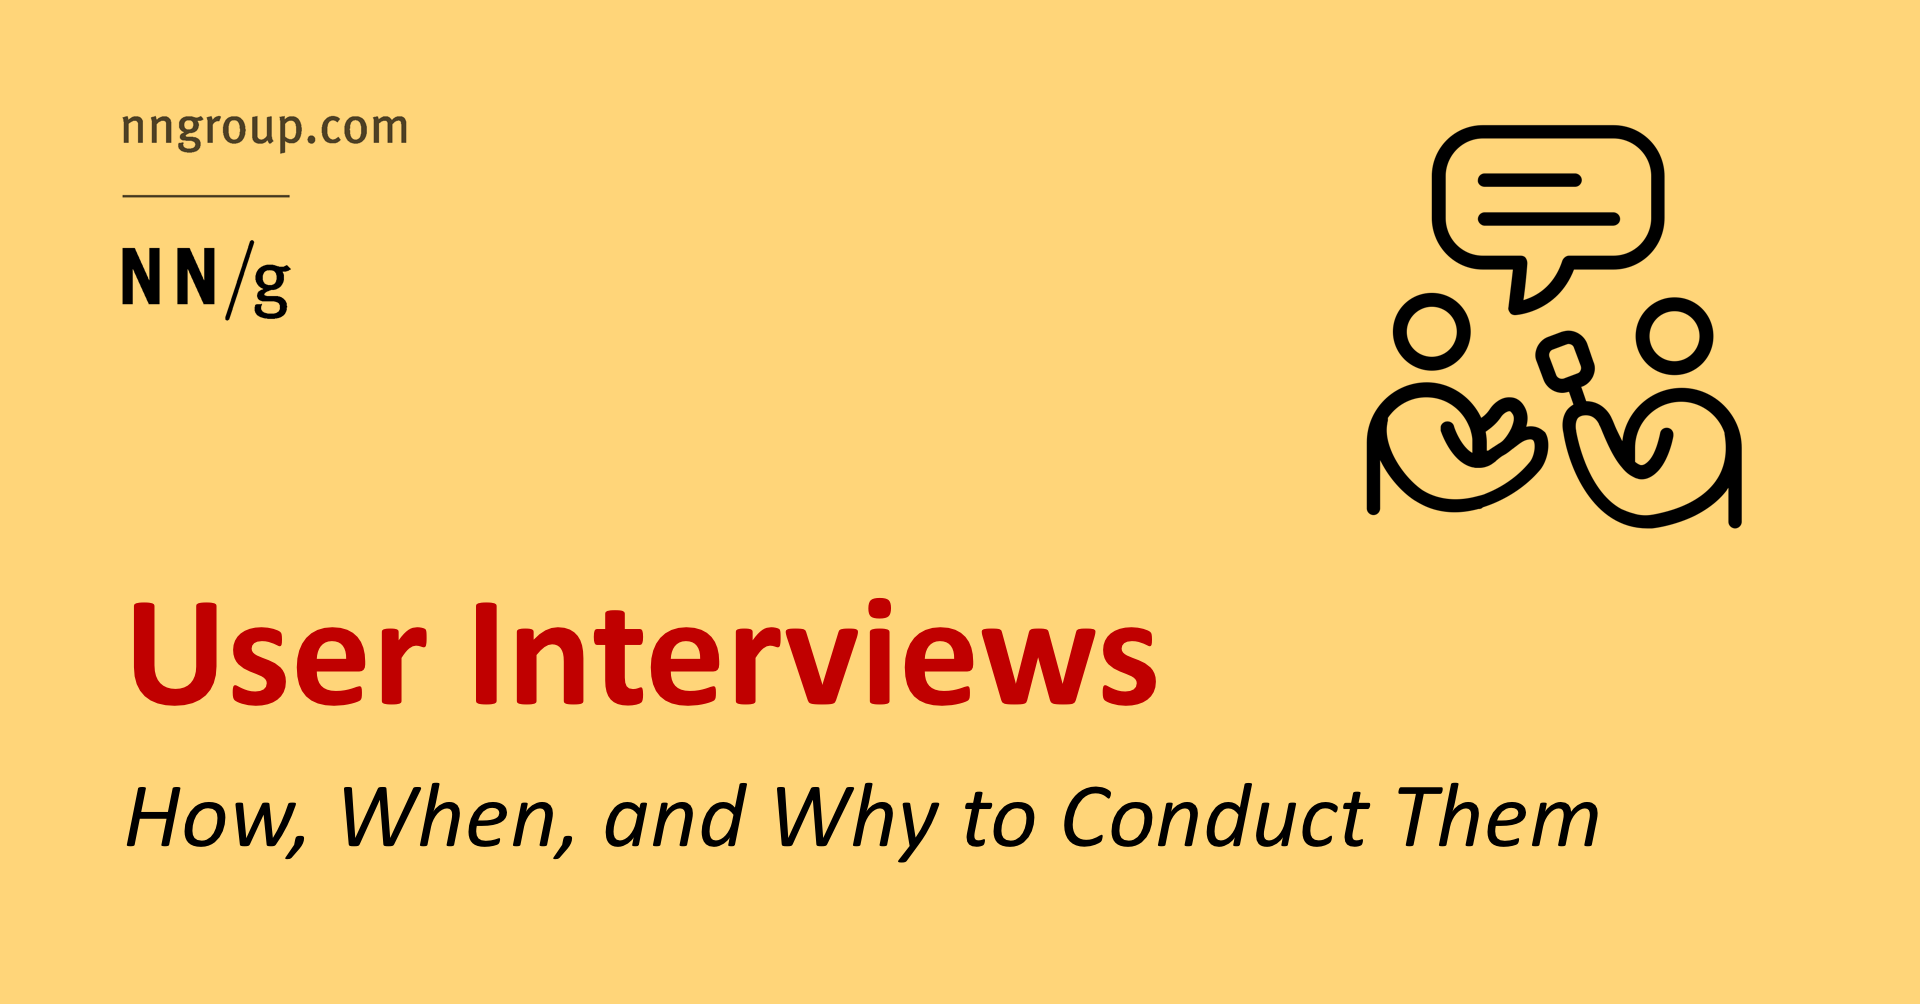 User Interviews: How, When, and Why to Conduct Them